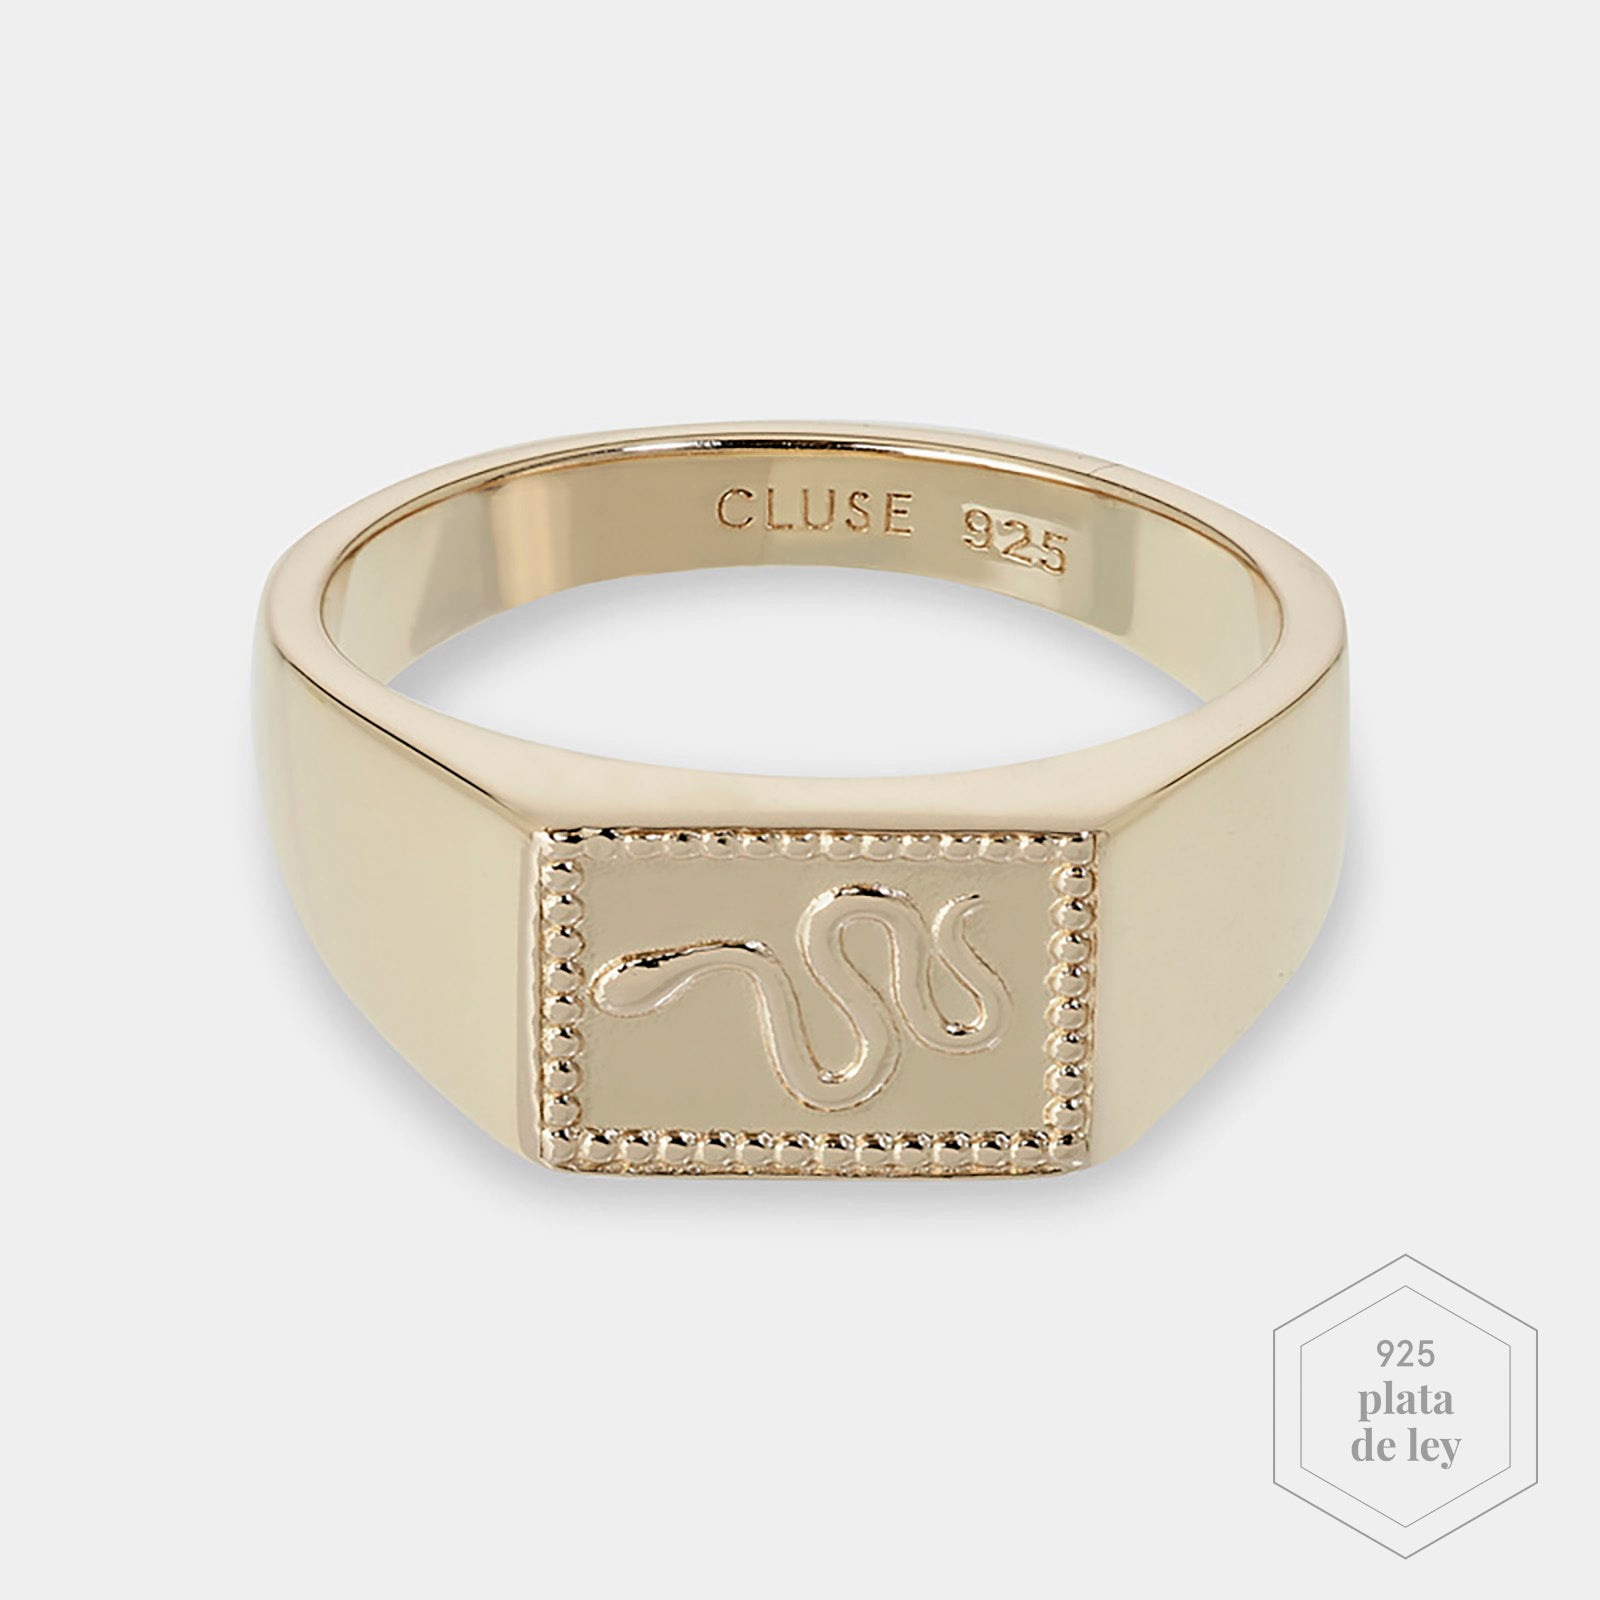 CLUSE Force Tropicale Gold Signet Rectangular Ring 52 CLJ41012-52 - Anillo talla 56